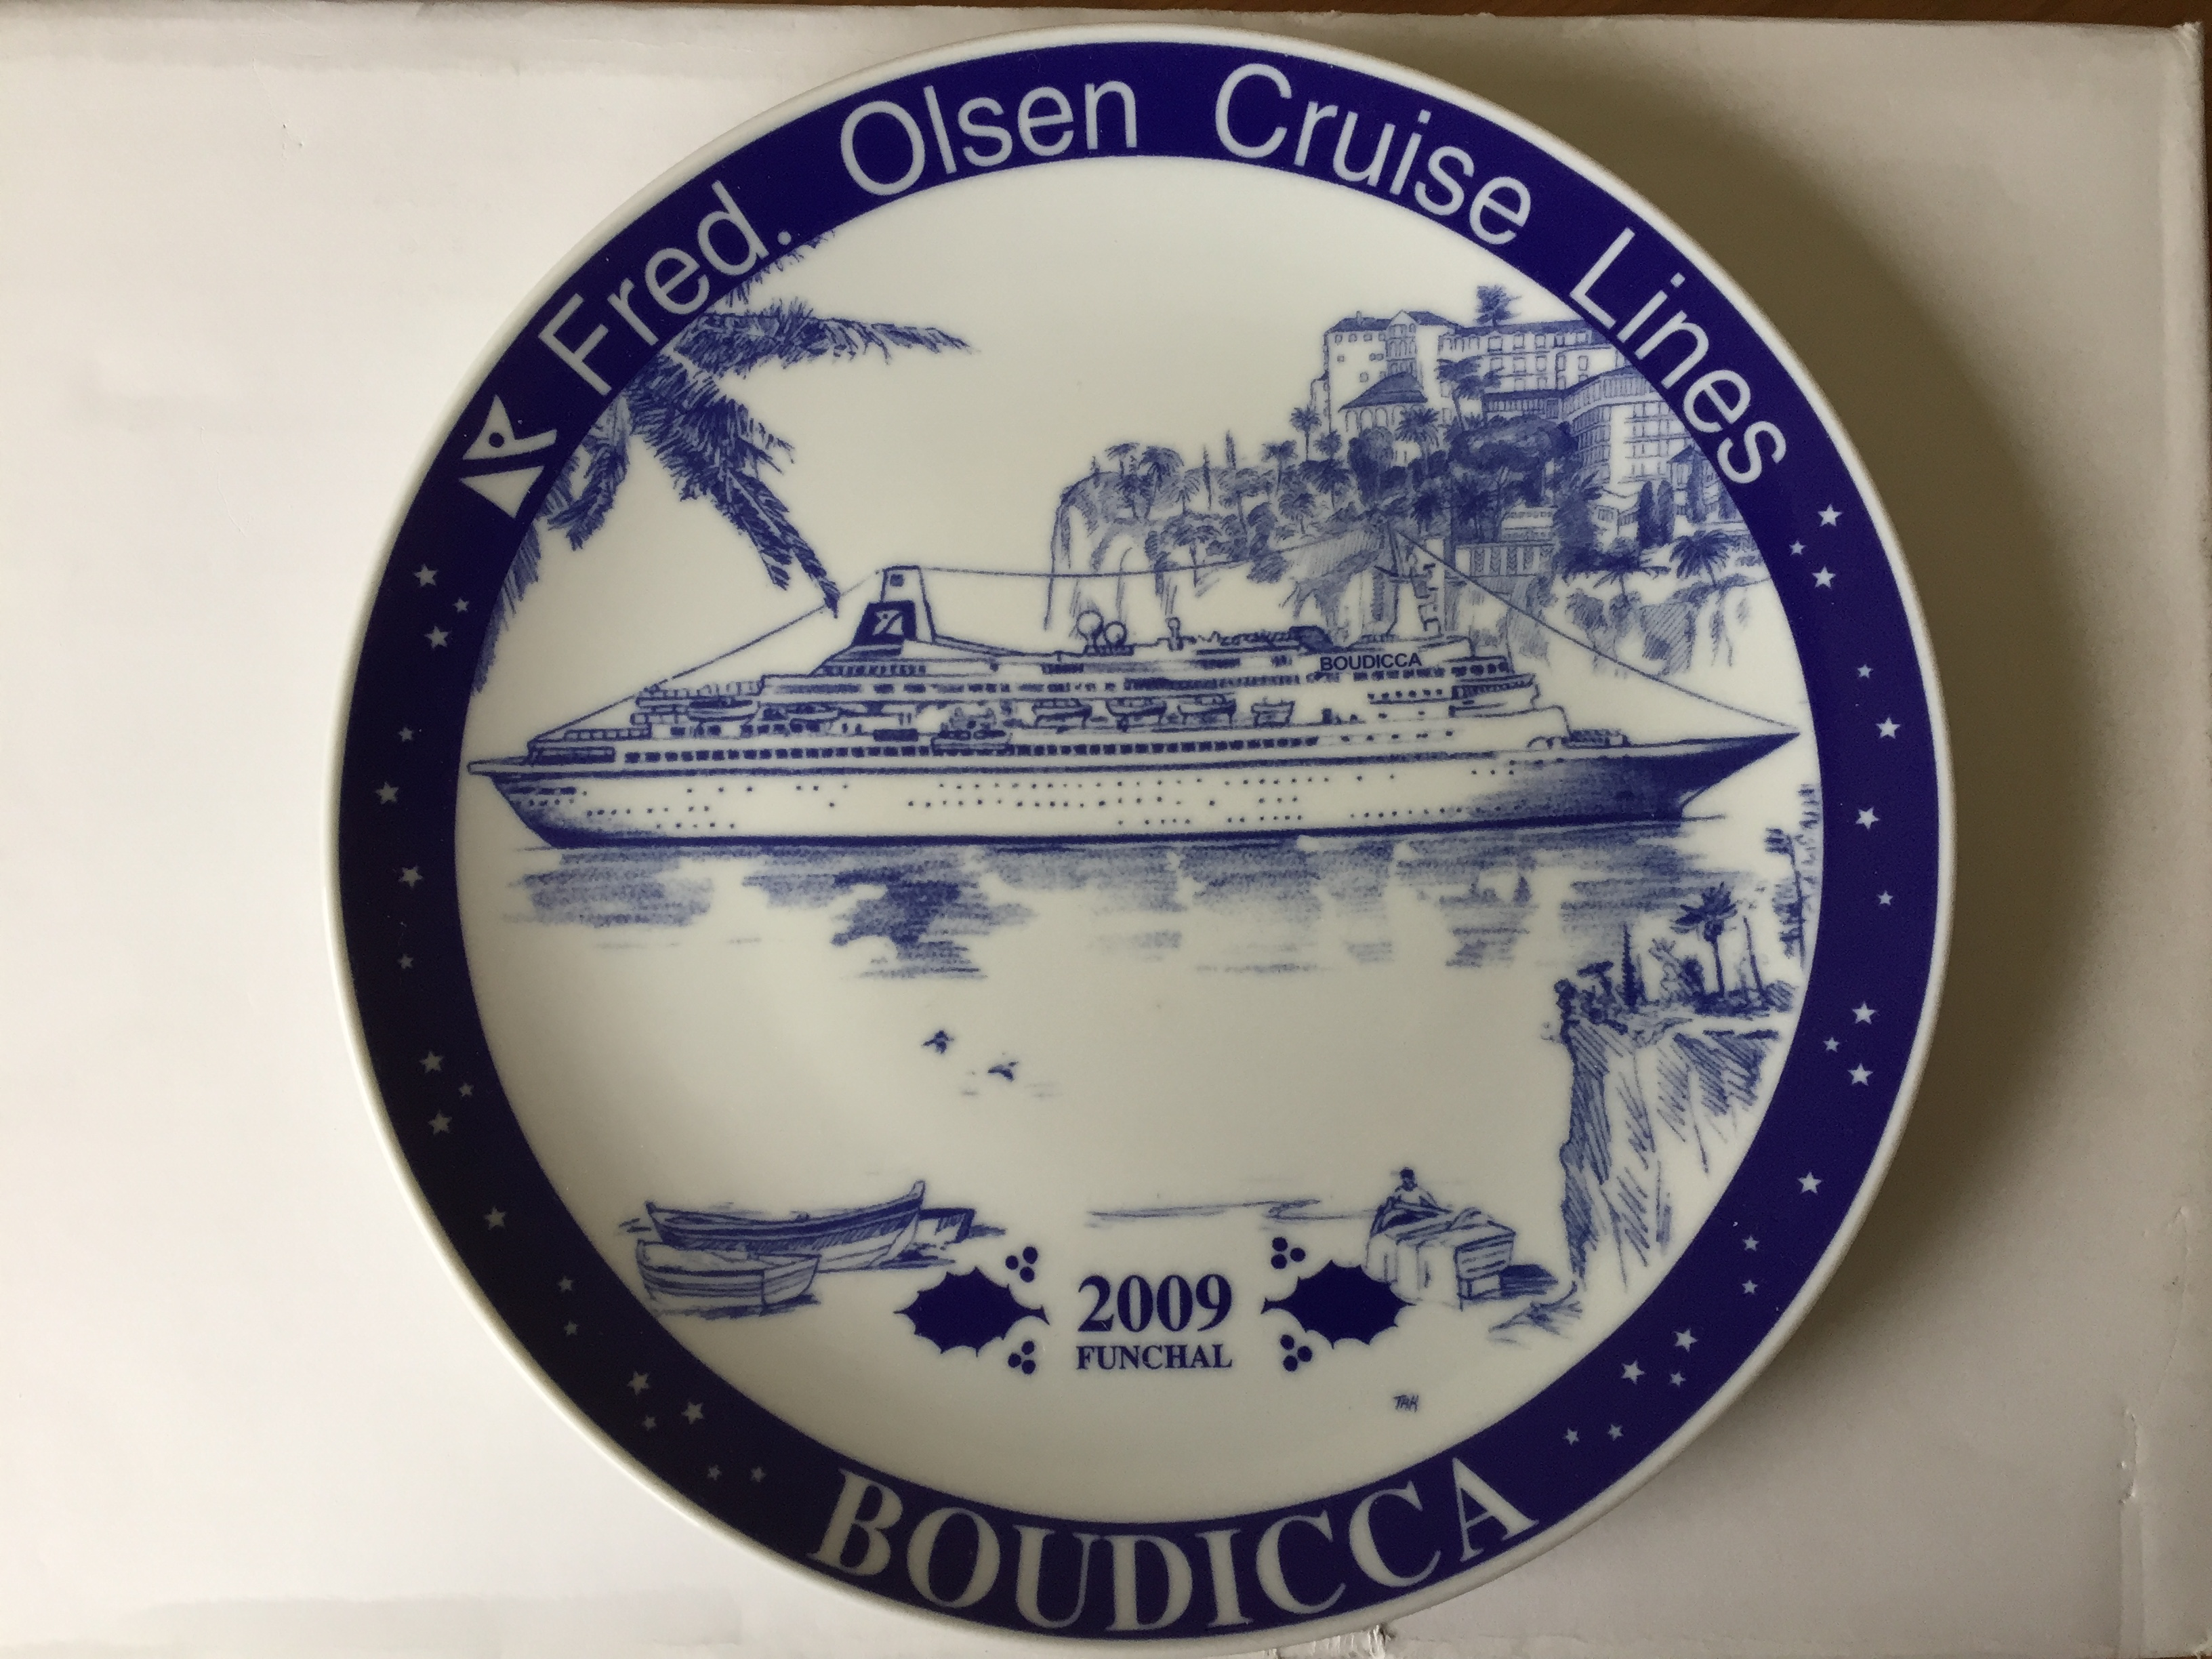 COMMEMORATIVE PLATE FROM THE FRED OLSEN CRUISE LINES LIMITED